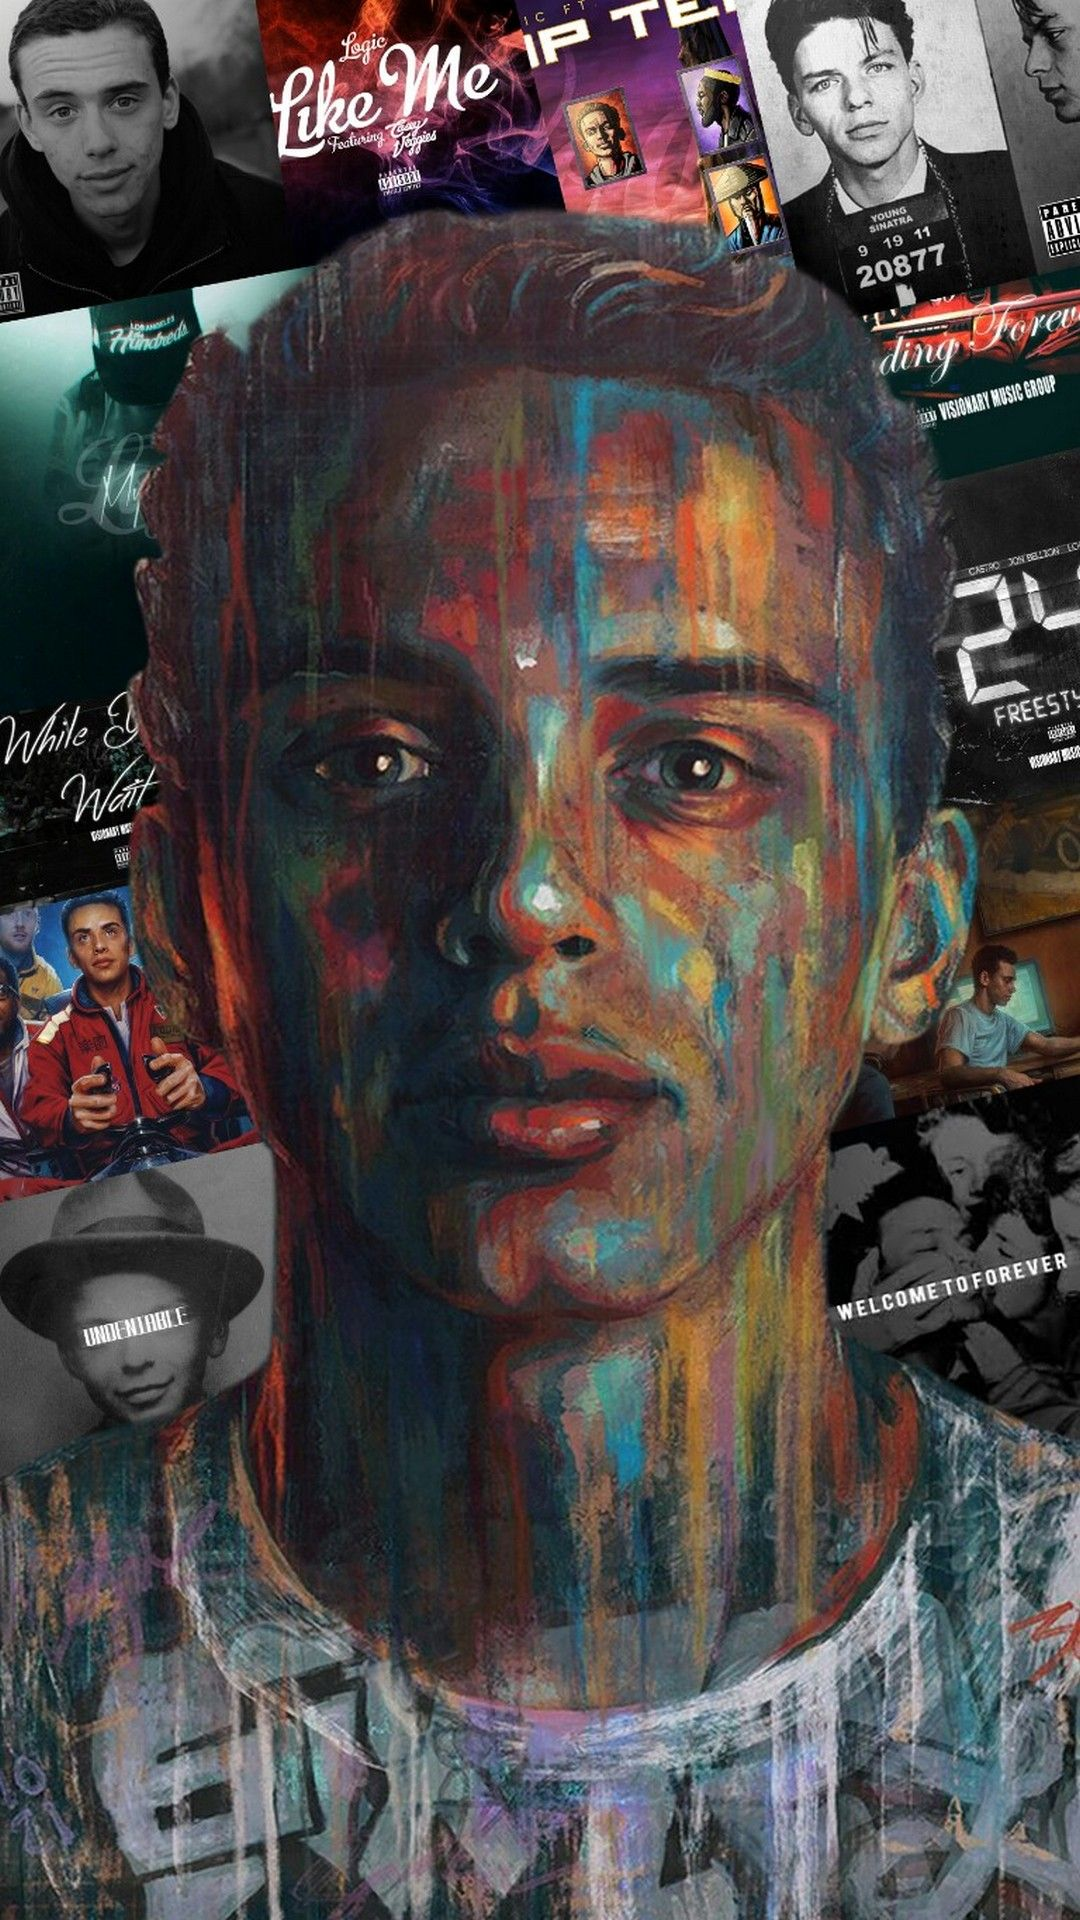 Logic Rapper Wallpaper For Mobile With Images Logic Rapper Wallpaper Logic Rapper Logic Art